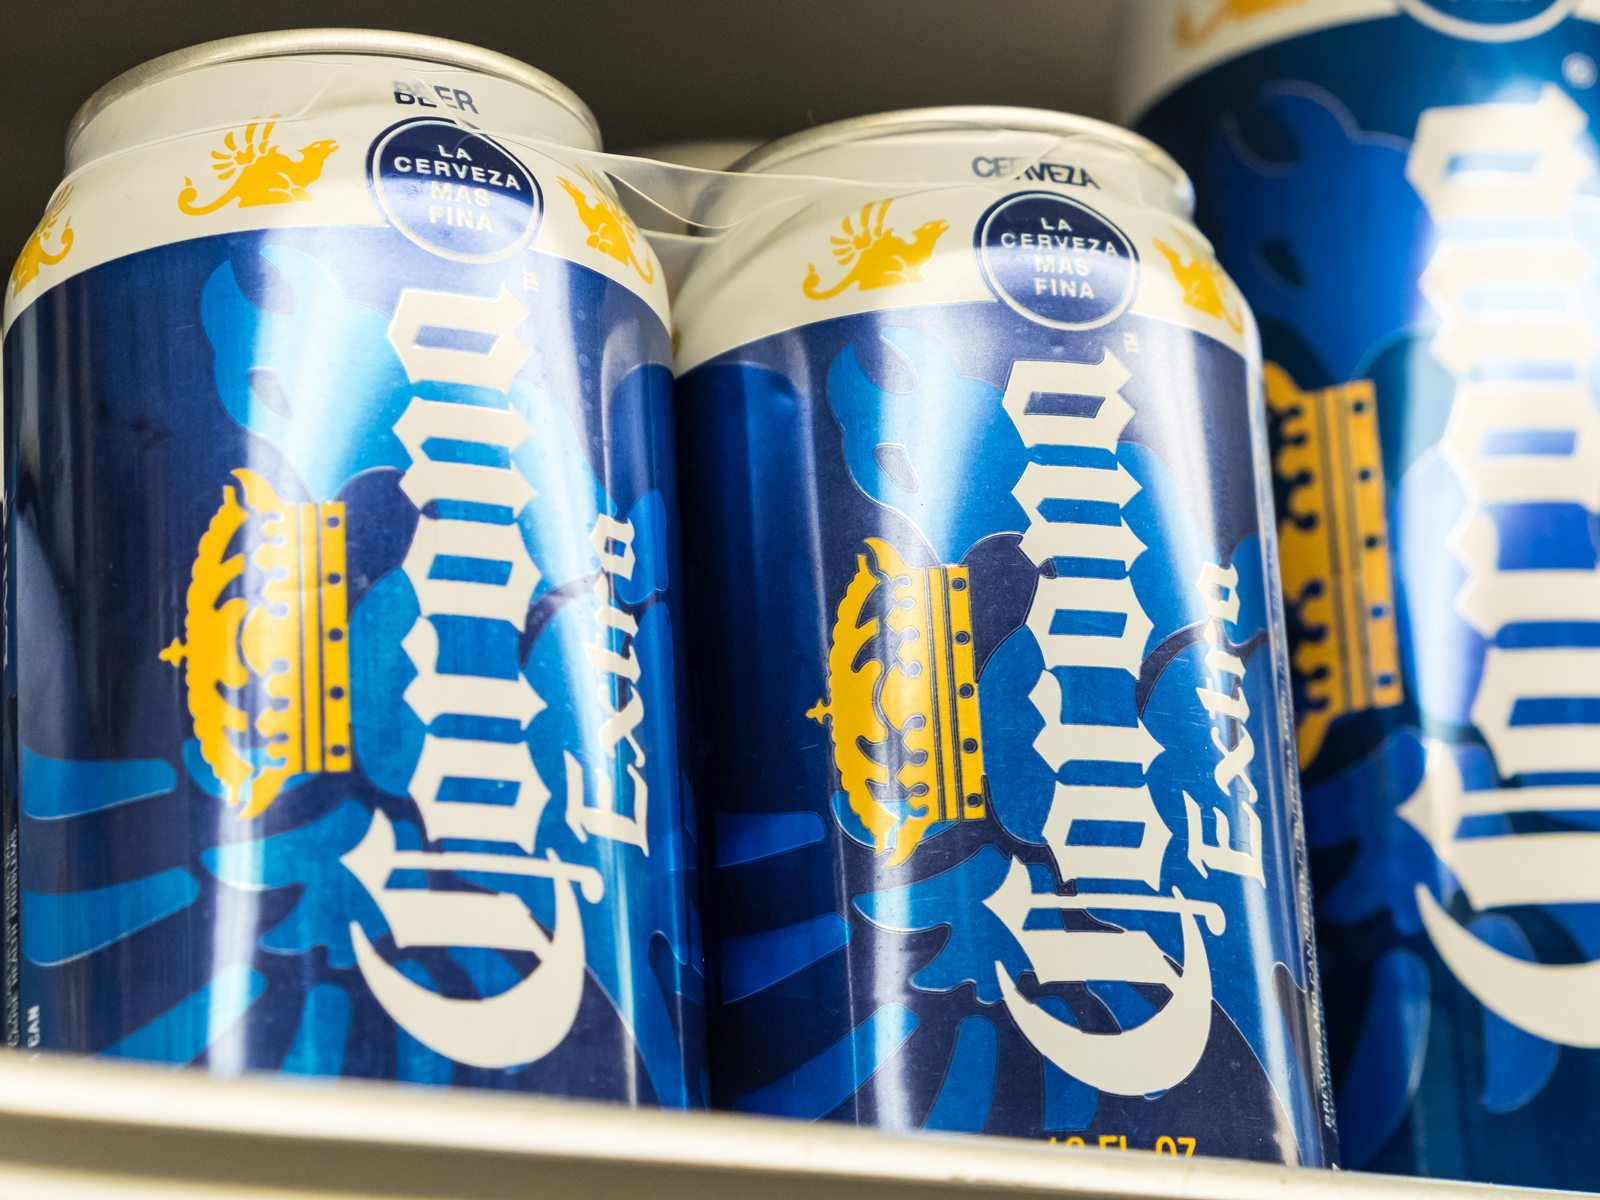 Corona Unveils Stackable Cans That Can Be Twisted Together